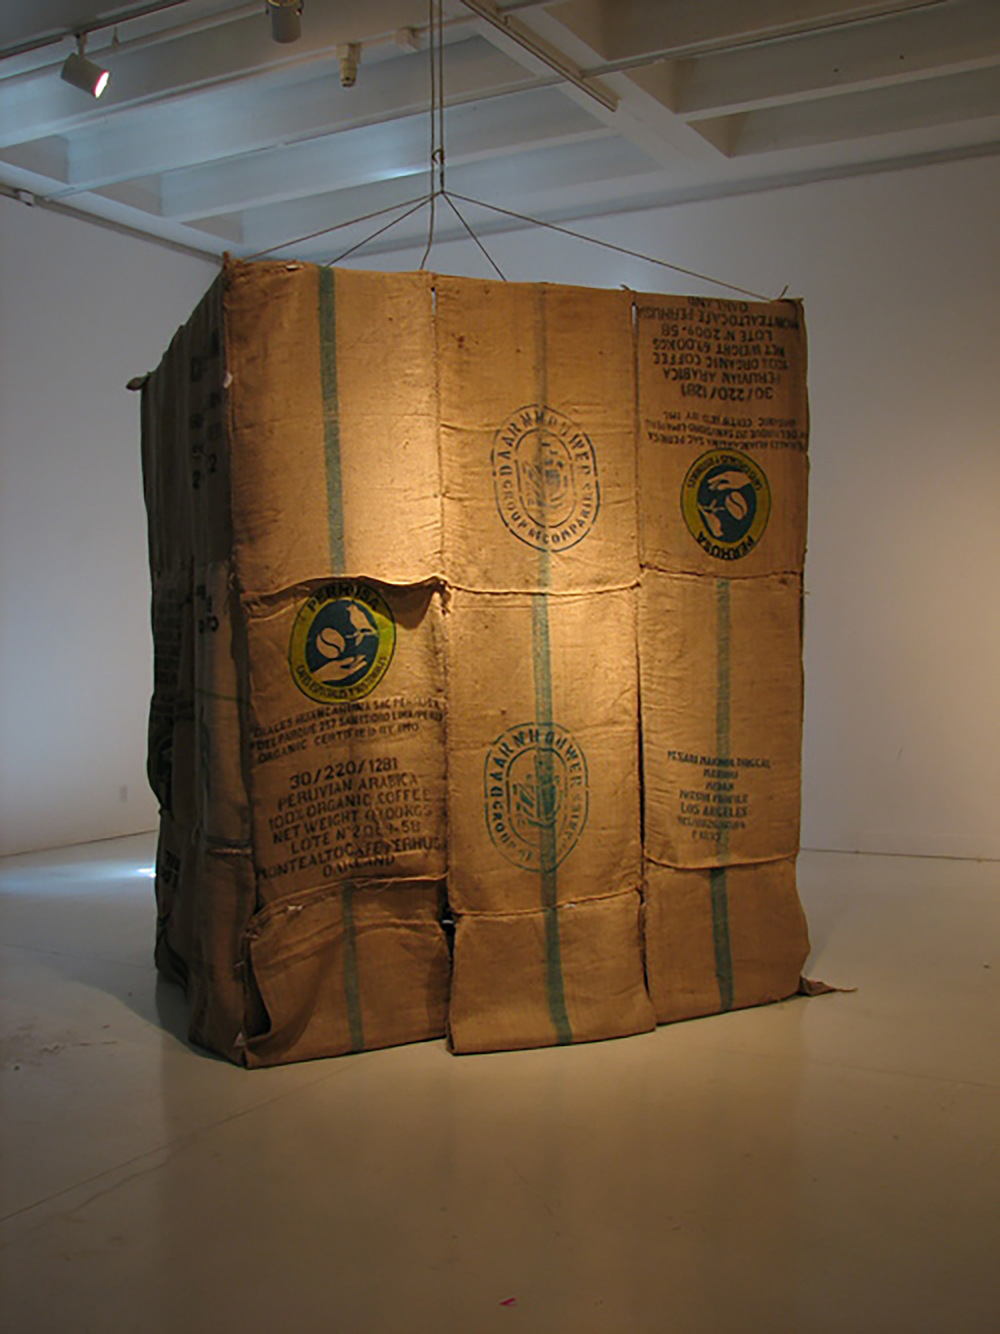 Title: Mexus Sexus Fluxus  Medium: Multimedia performance Date: April 2011 Notes: Installation view of Colonial Bagism, a structure made out of coffee bags featured as a part of Mexus Sexus Fluxus.